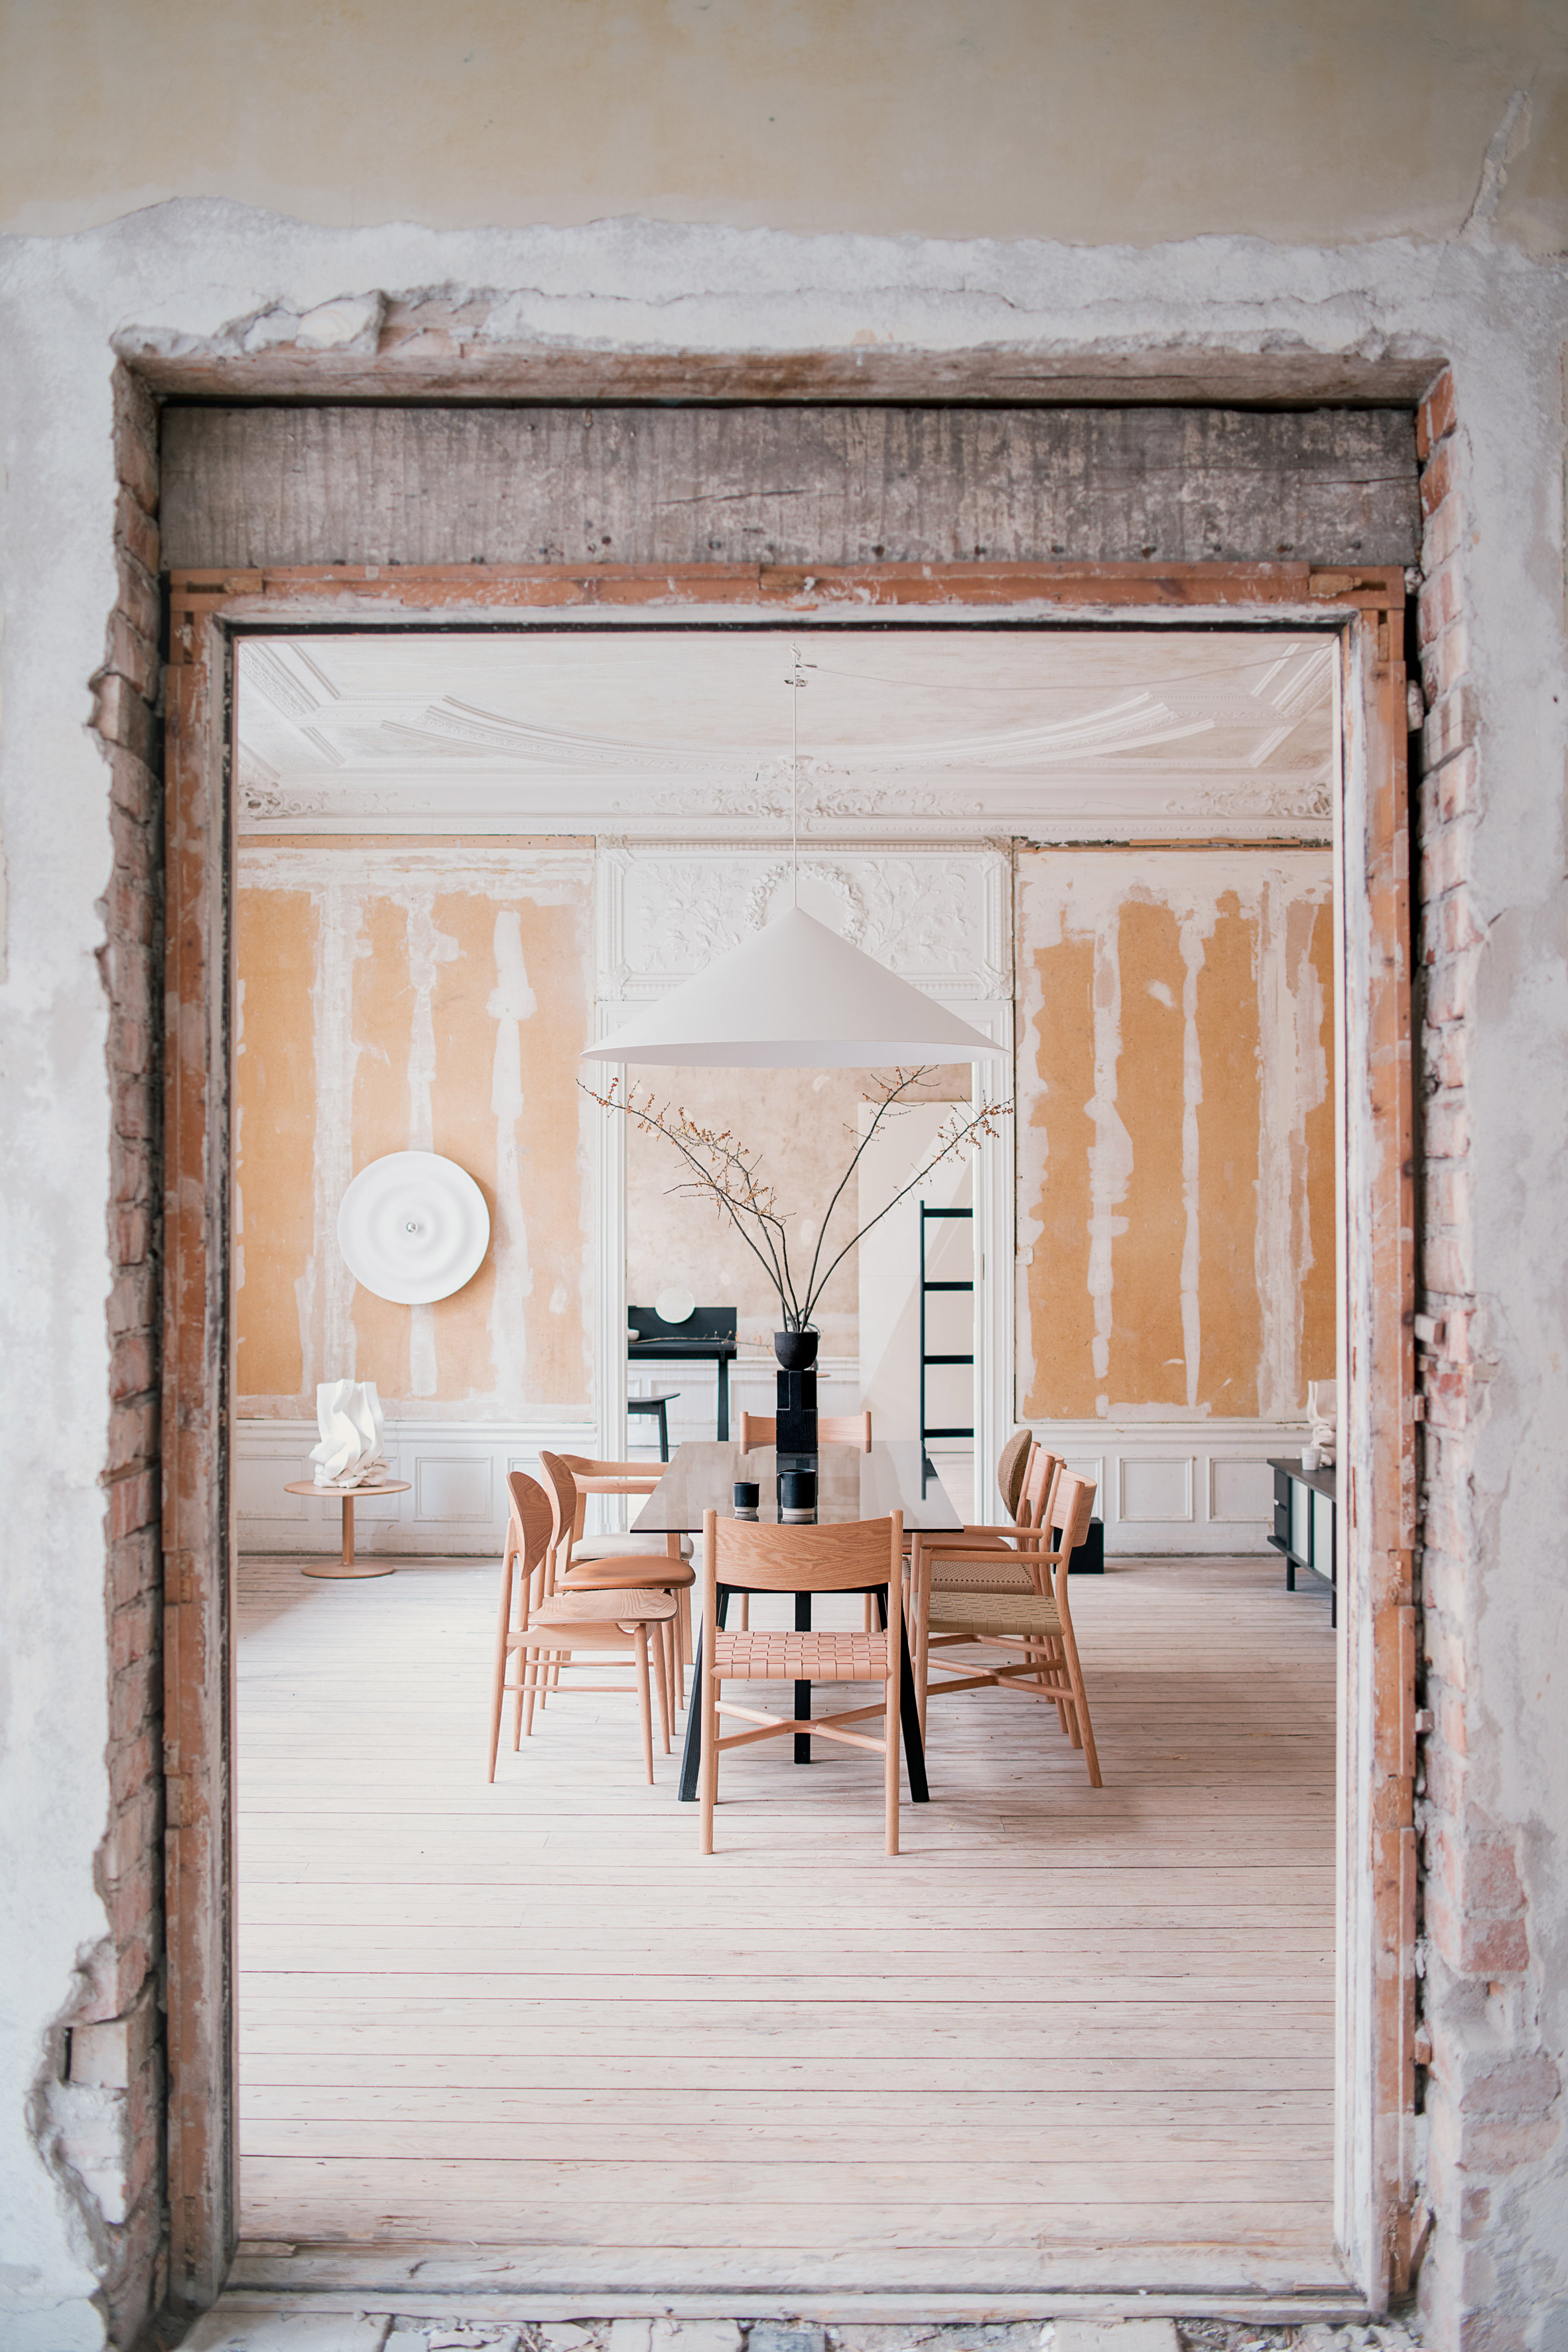 New Japanese furniture brand Ariake presents first range inside crumbling Stockholm embassy